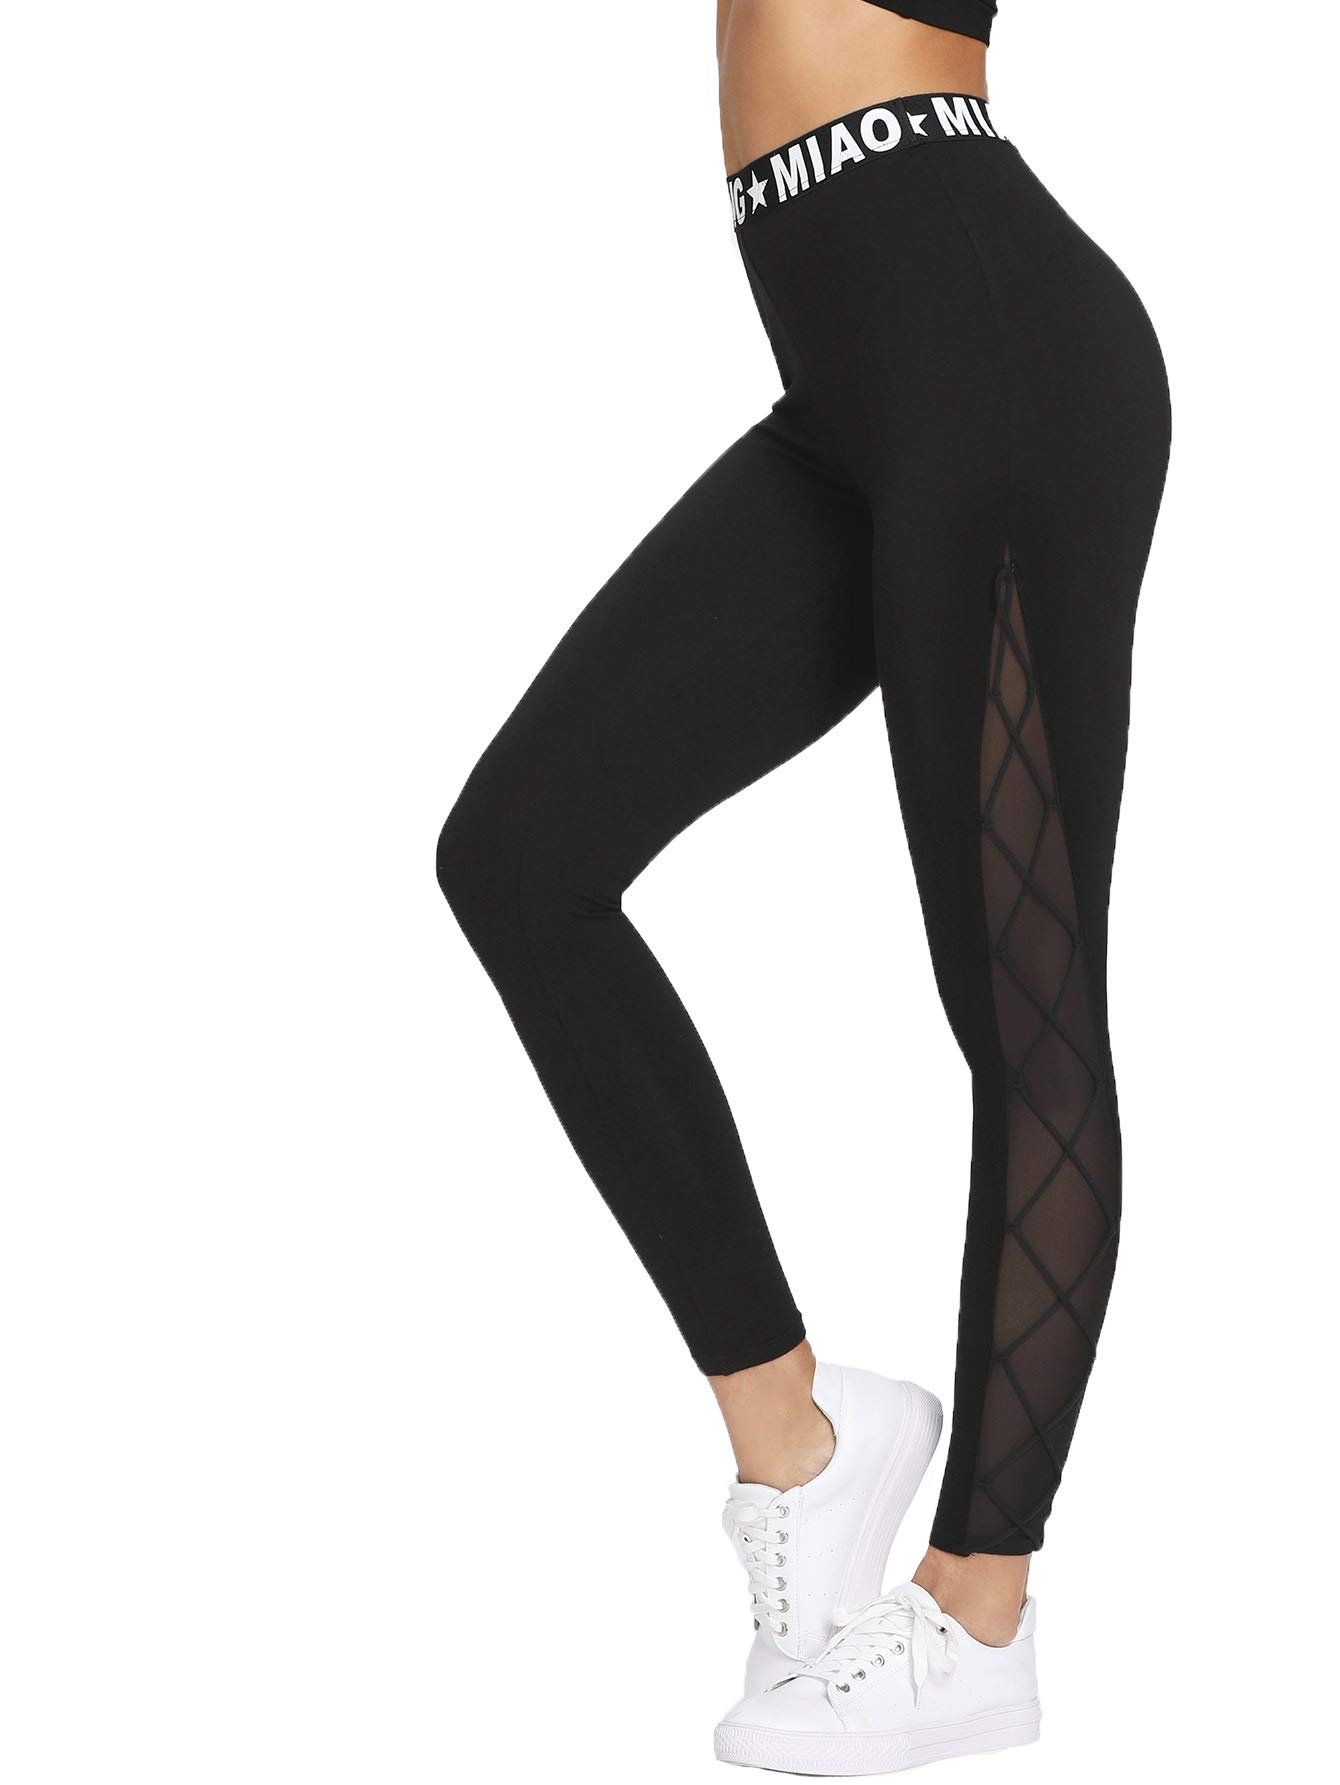 SweatyRocks Women's Mesh Panel Side High Waist Leggings Skinny Workout Yoga Pants Black S